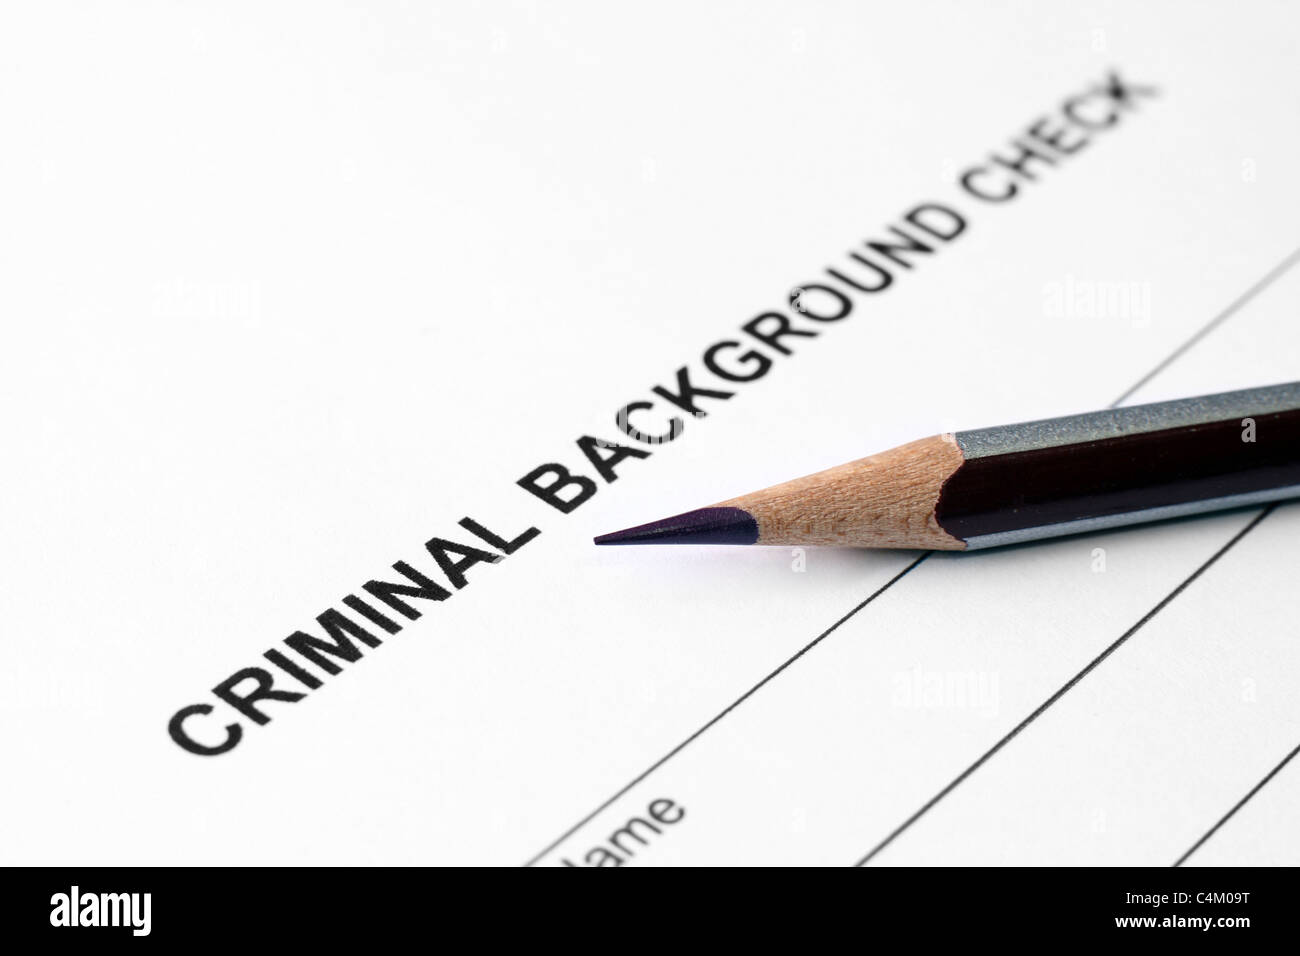 Criminal background check form Stock Photo  37318676   Alamy Criminal background check form